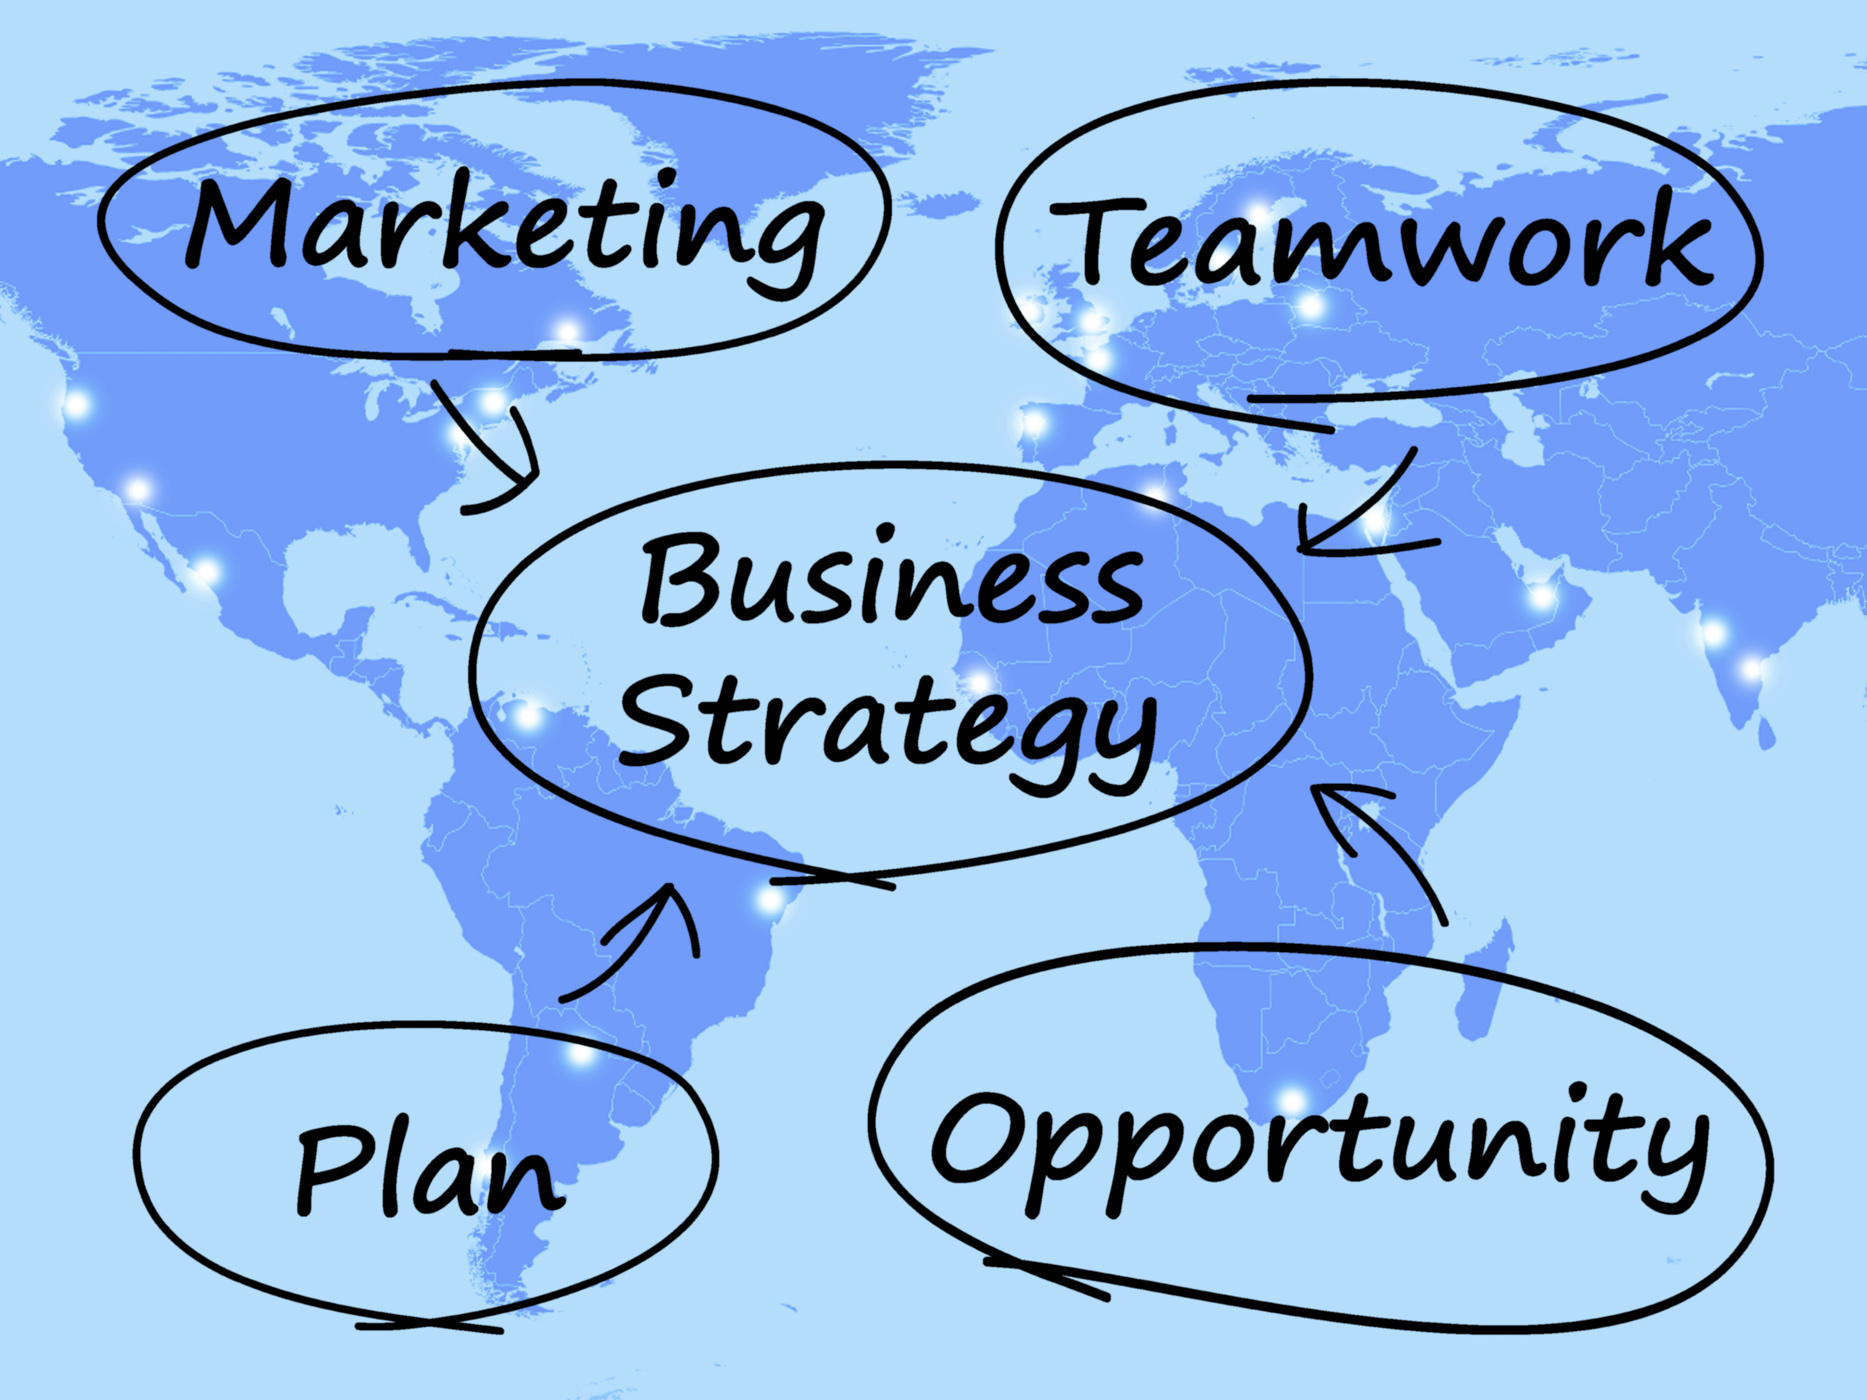 Business Strategy Diagram Showing Teamwork And Plan, Achieve, Objective, Successful, Success, HQ Photo